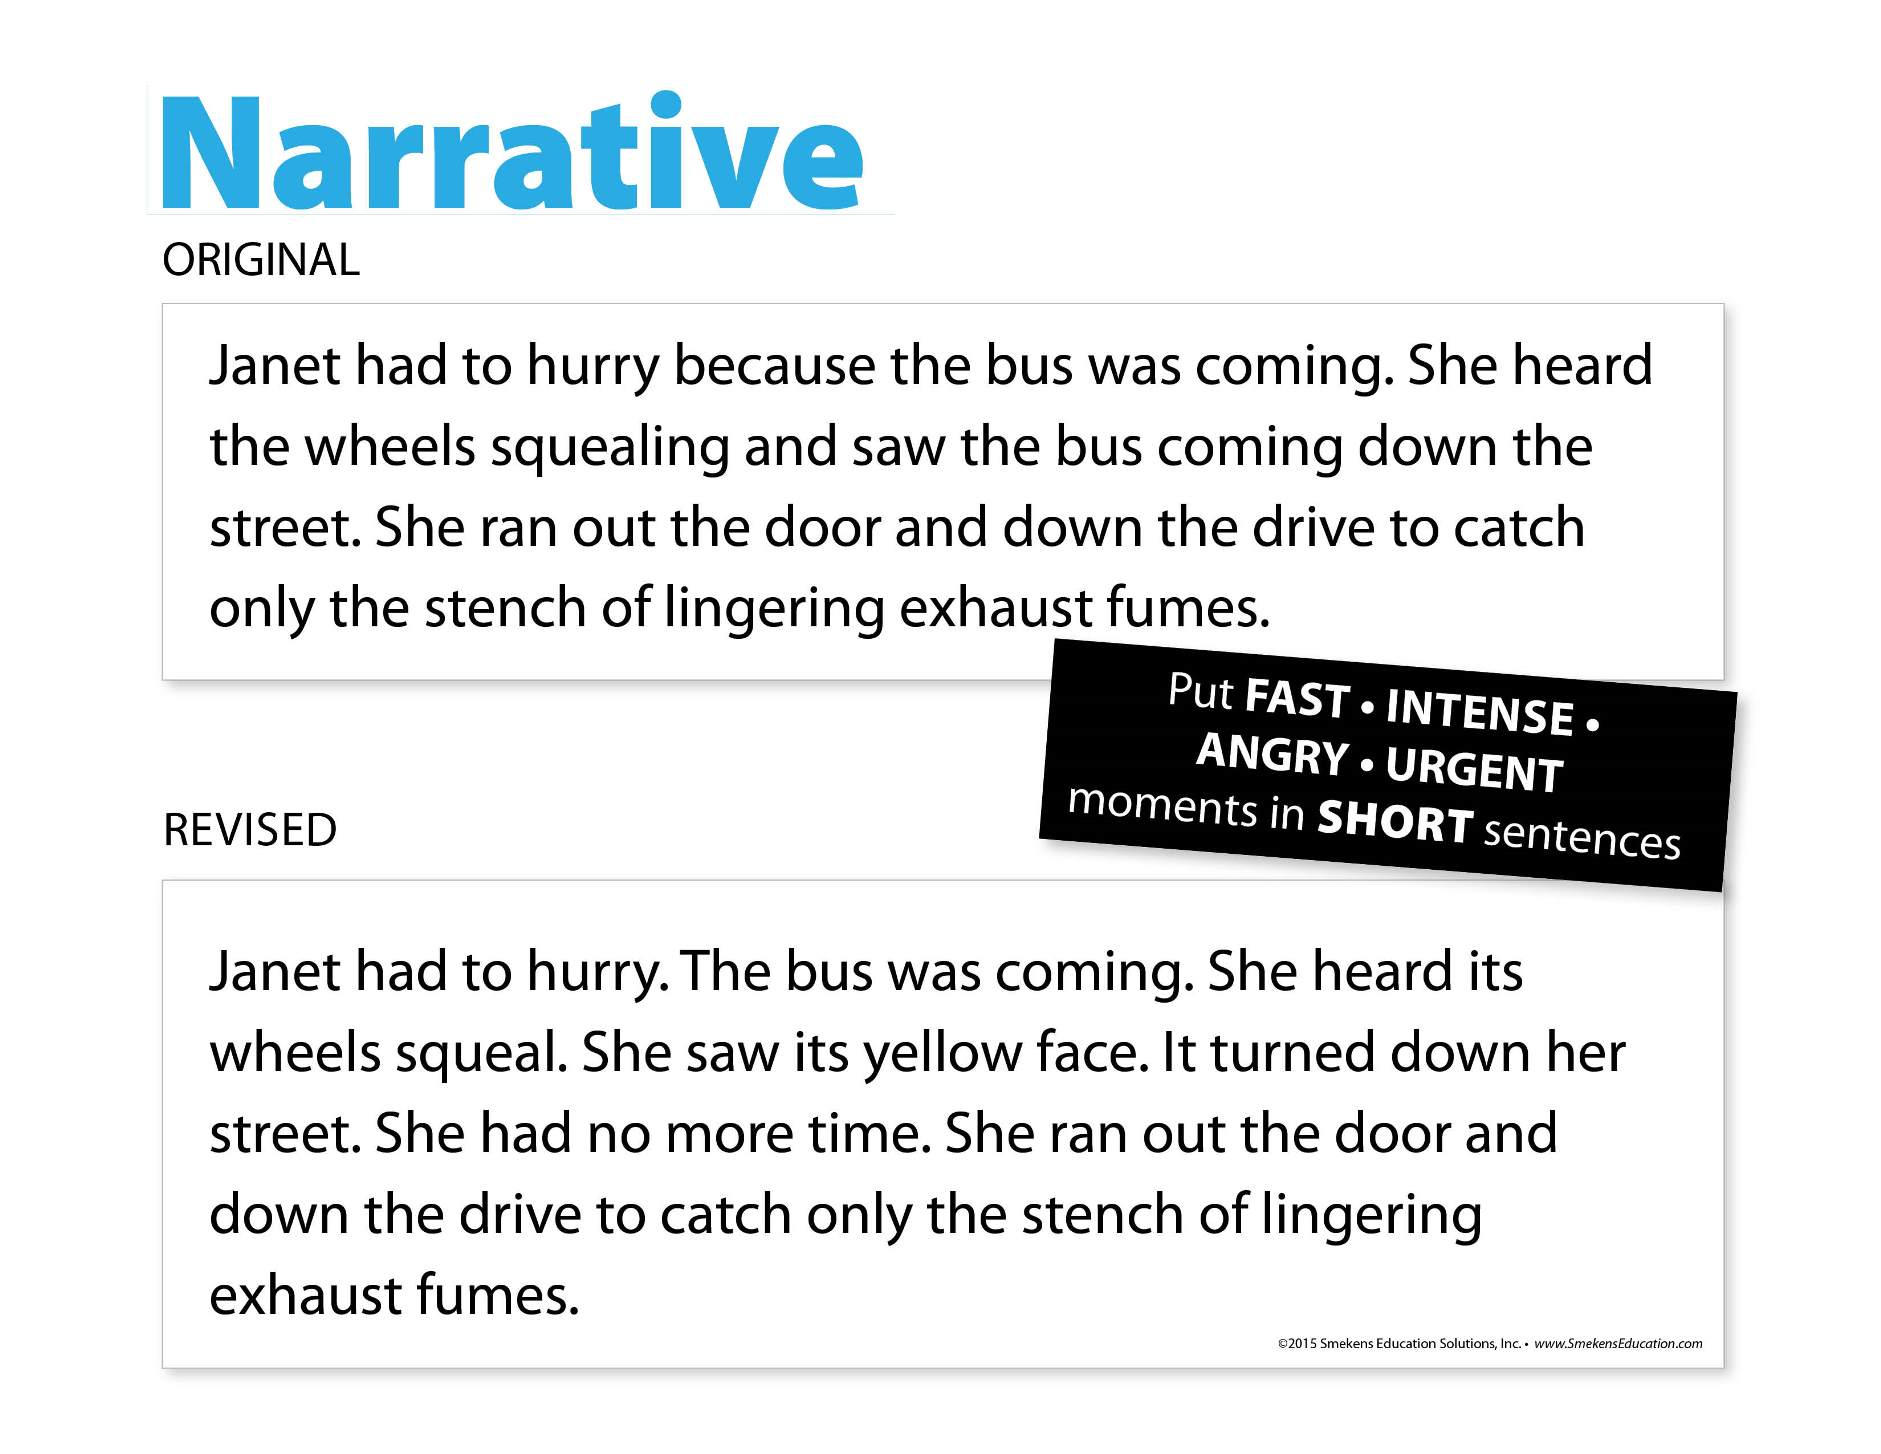 Narrative Writing Example for Fast-Paced Tone with Sentence Fluency